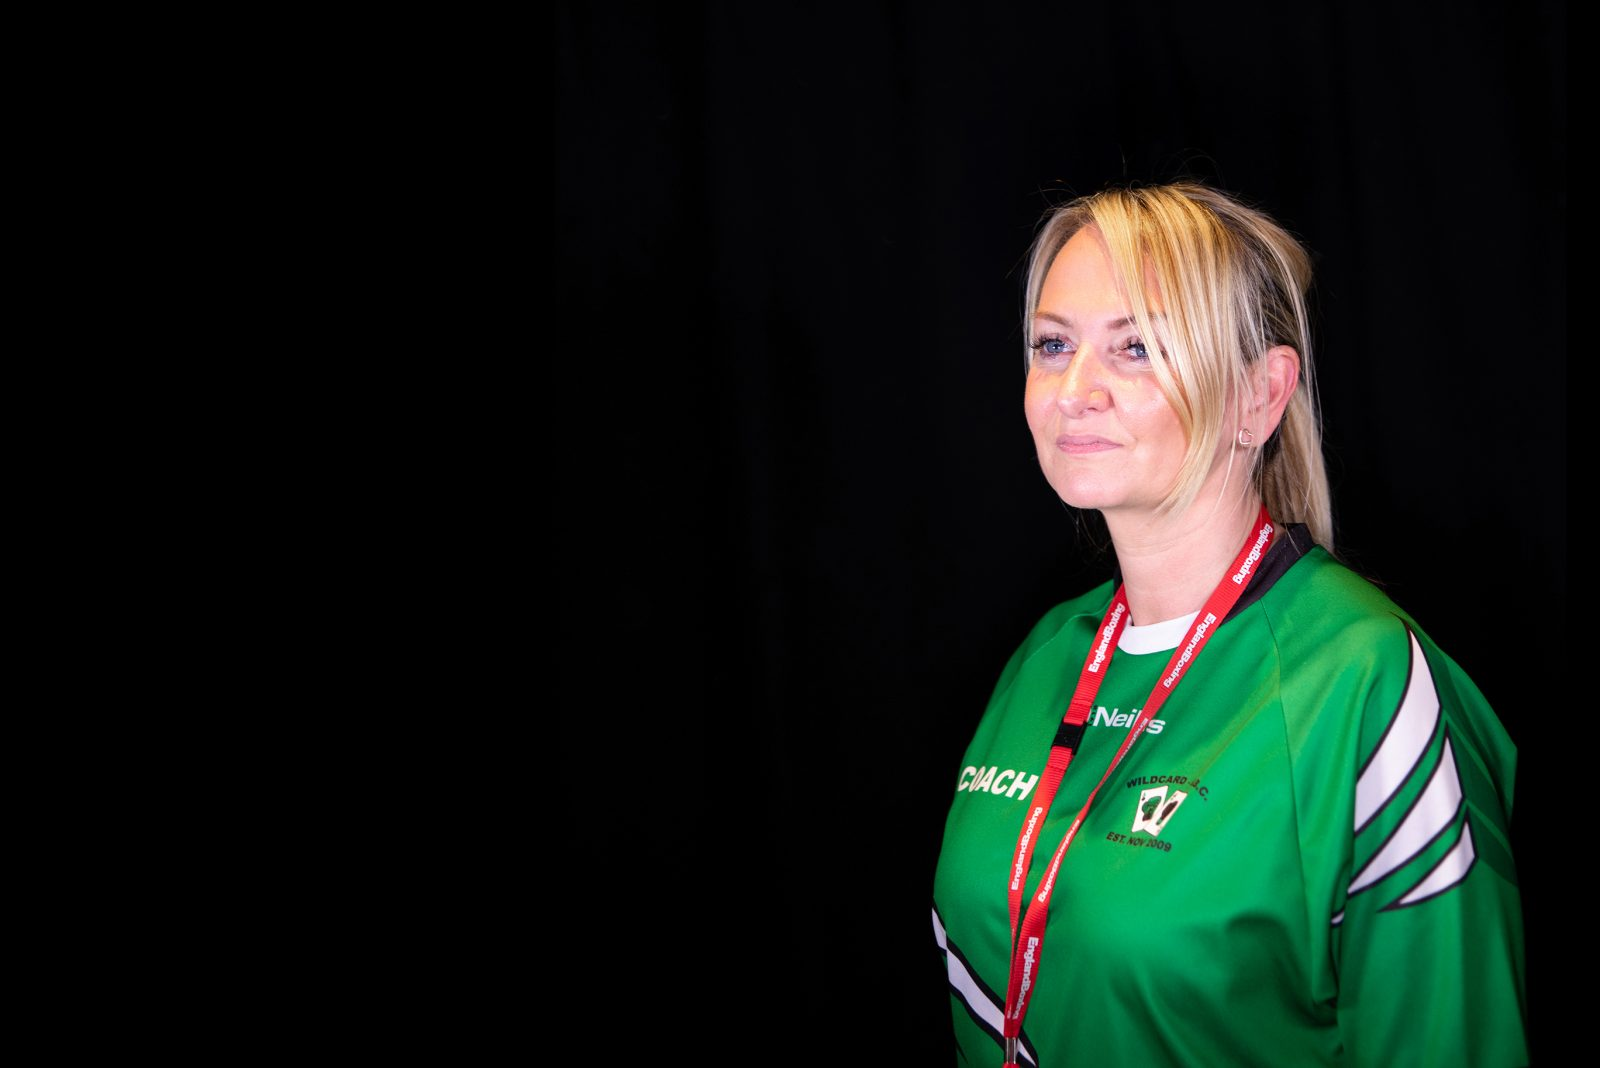 A woman in a green sports top and a red lanyard around her neck looks in to the distance and smiles.